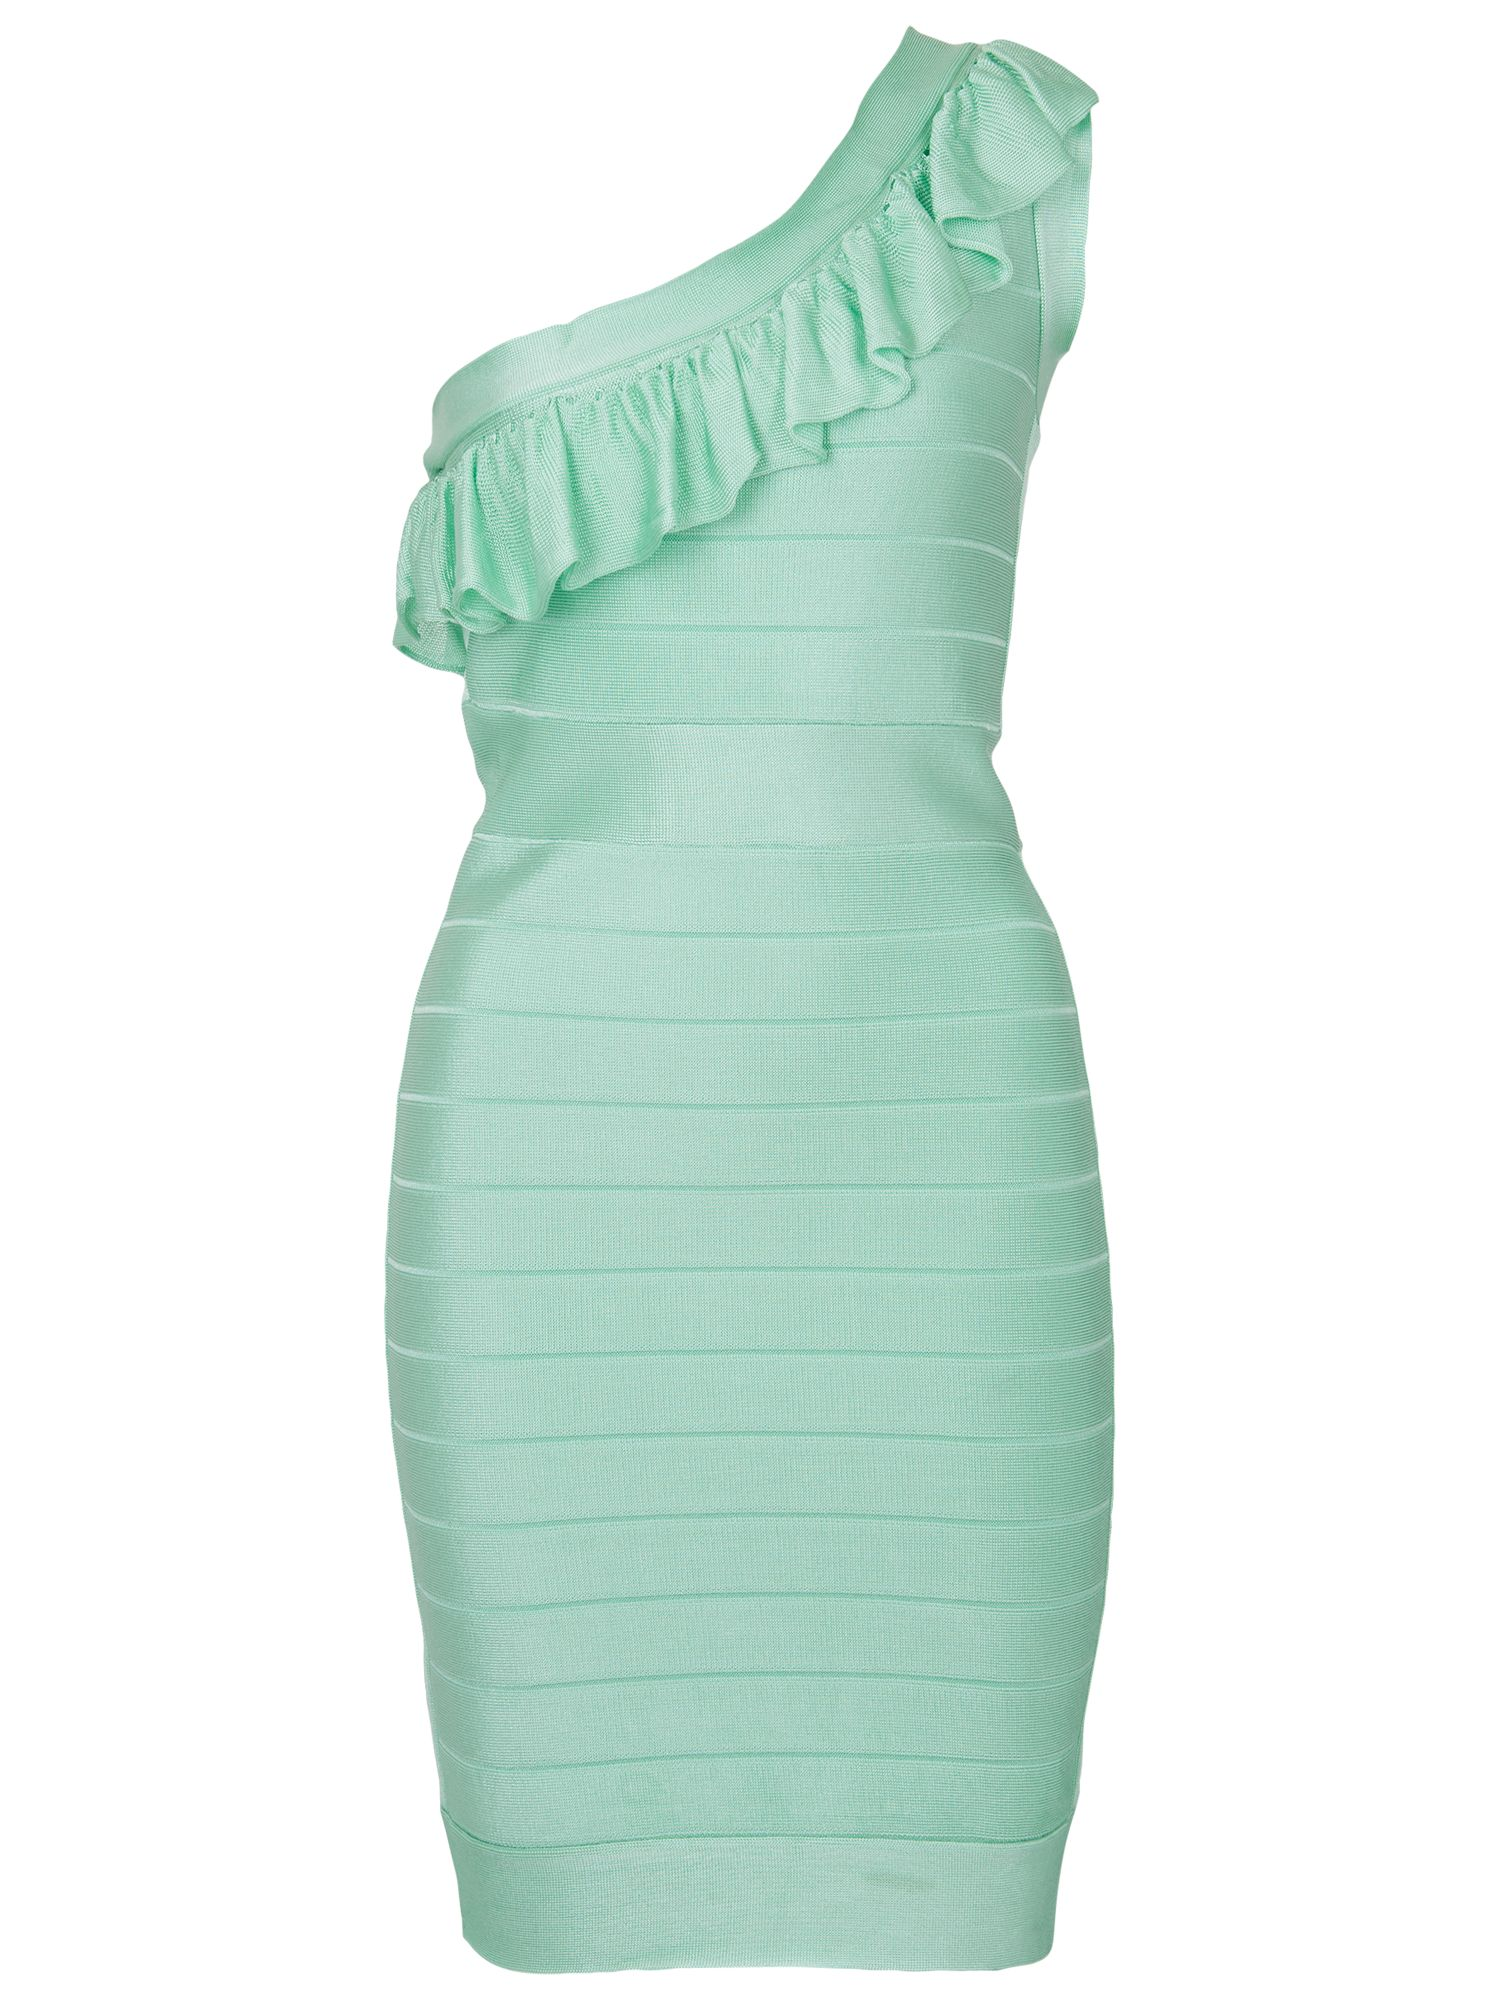 french connection miami spotlight asymmetric dress mint mojito, french, connection, miami, spotlight, asymmetric, dress, mint, mojito, french connection, 16|8|12|6|14|10, women, womens dresses, gifts, wedding, wedding clothing, female guests, 1875531